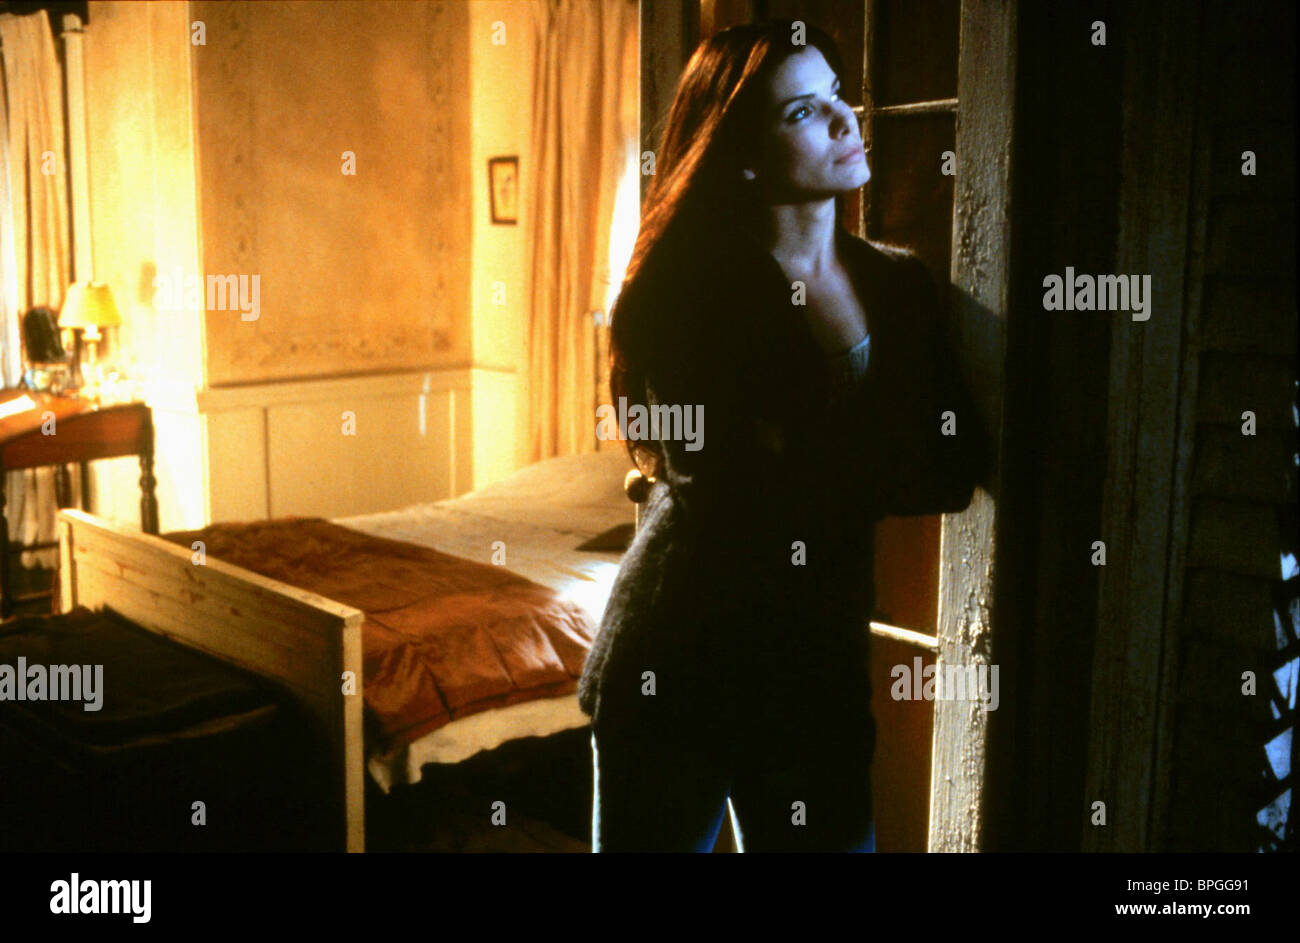 SANDRA BULLOCK PRACTICAL MAGIC (1998) - Stock Image